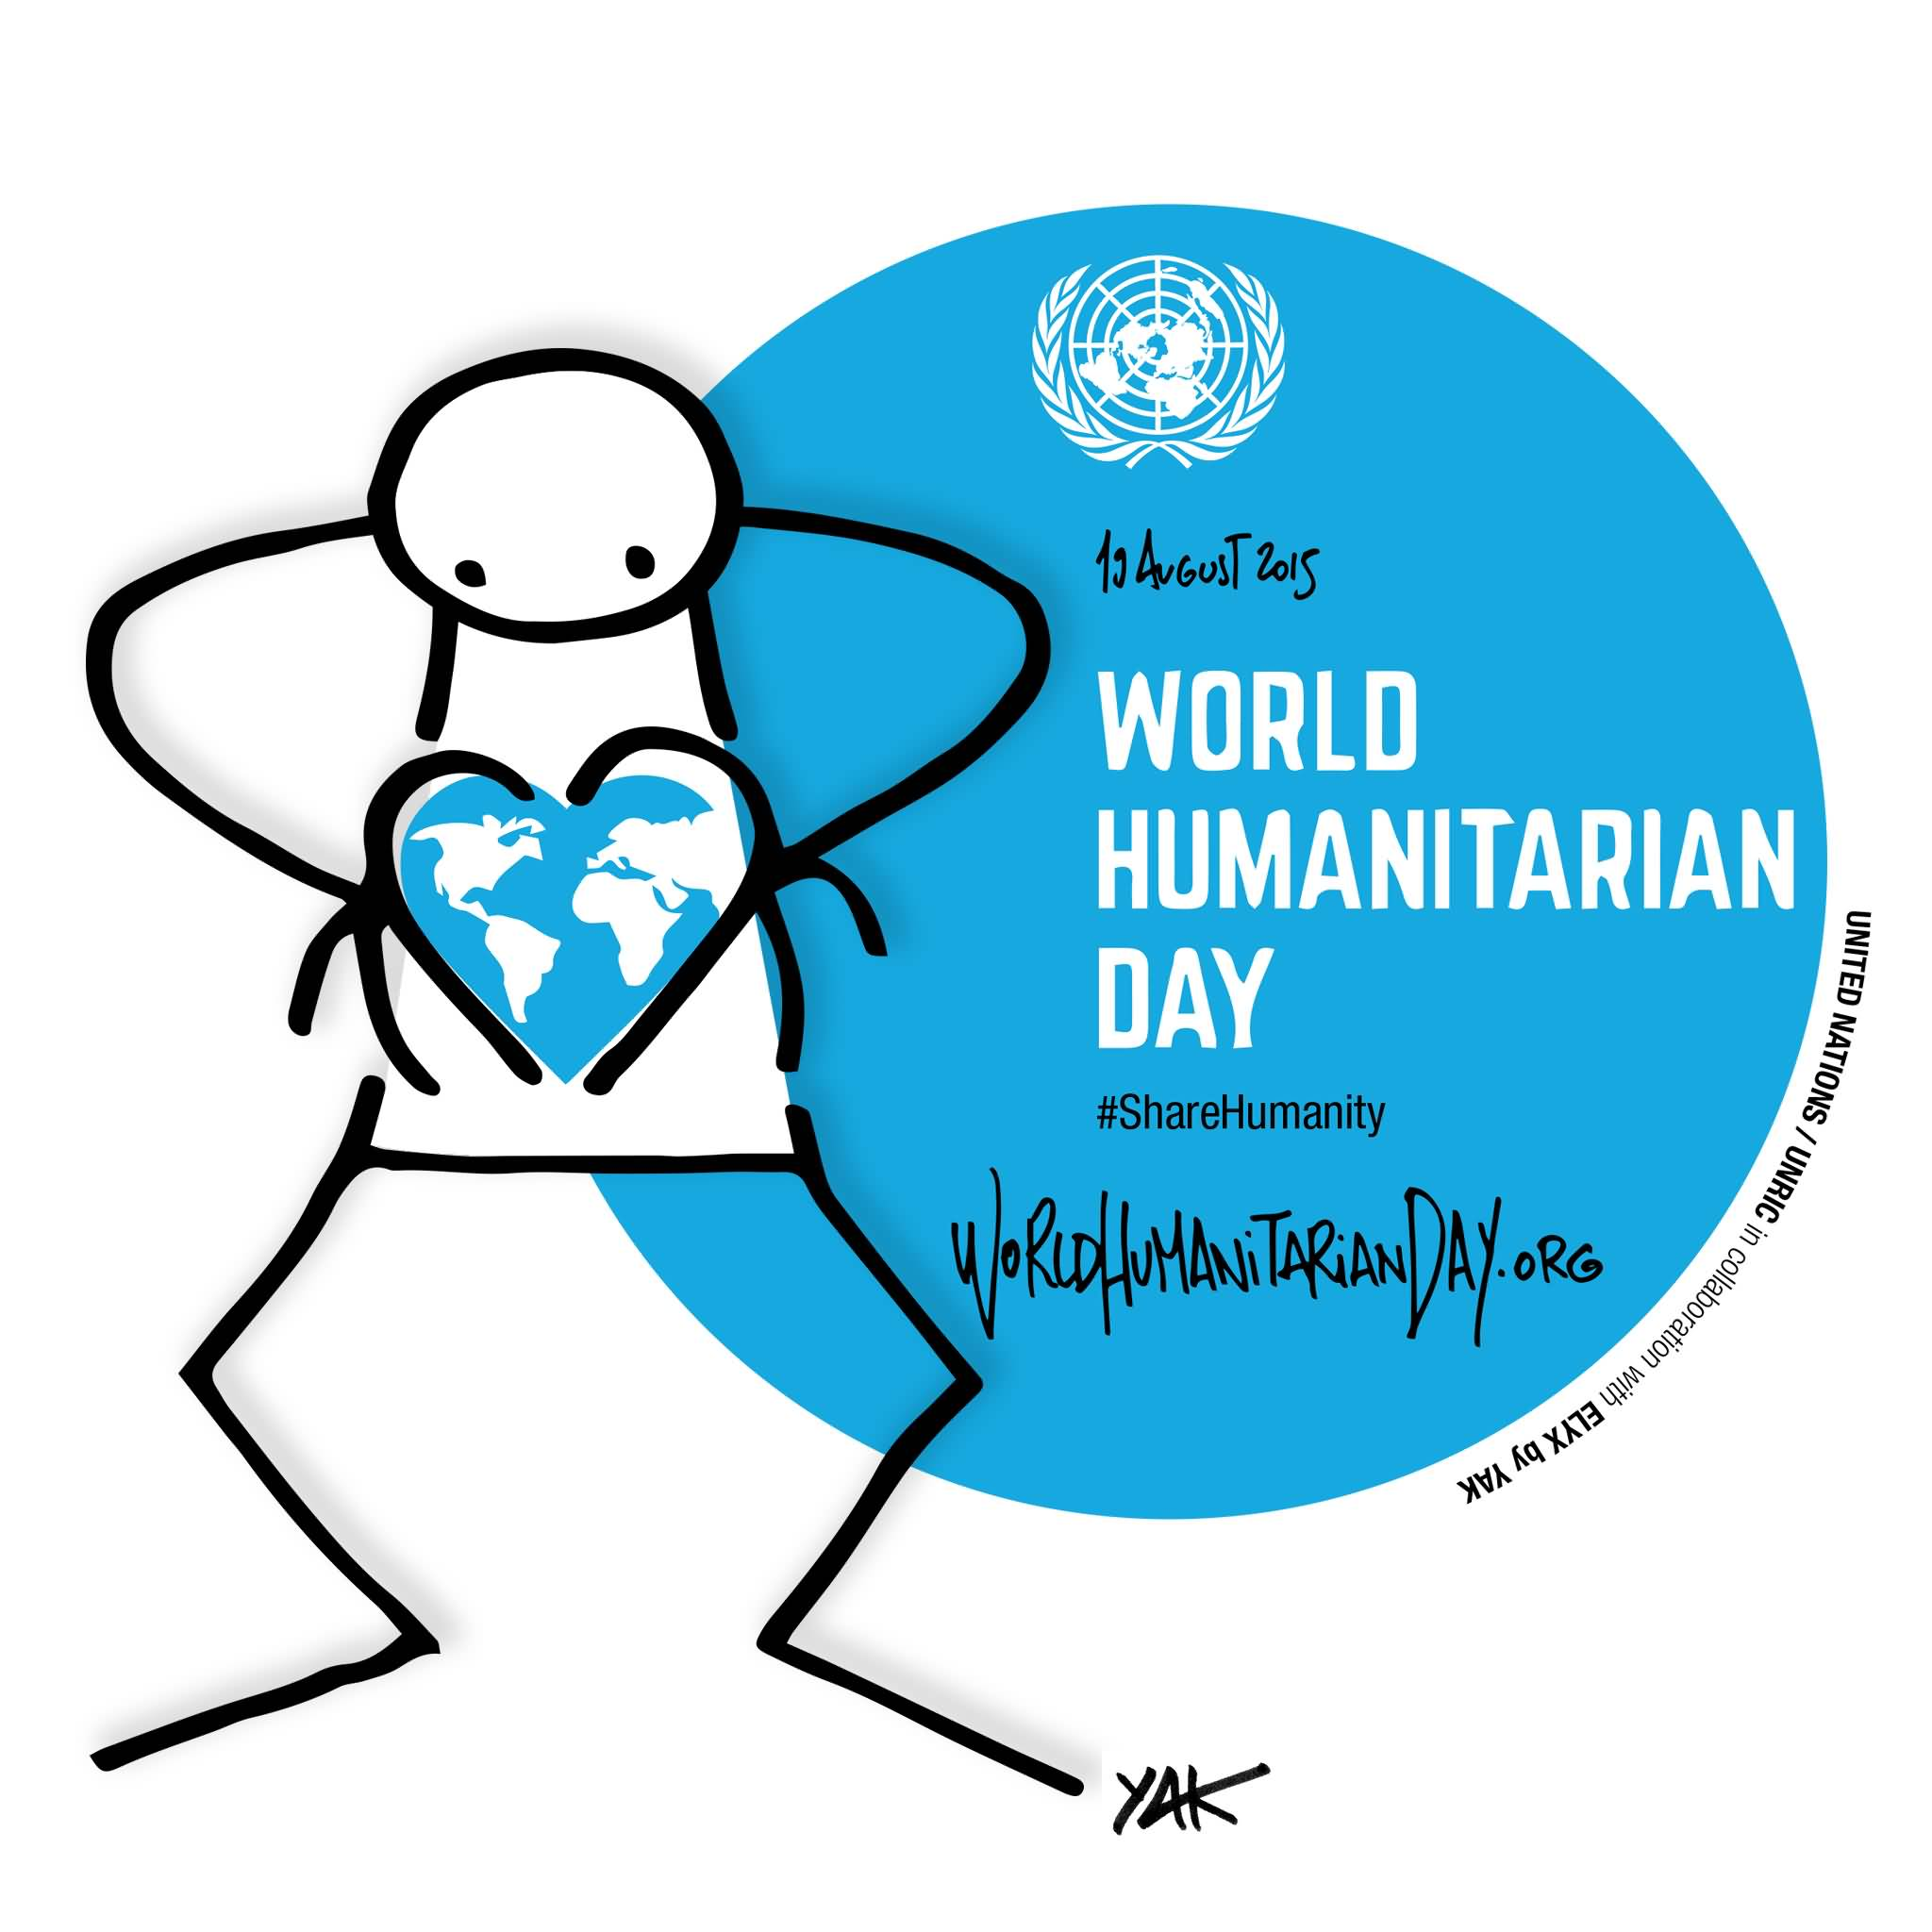 19th August Word Humanitarian Day